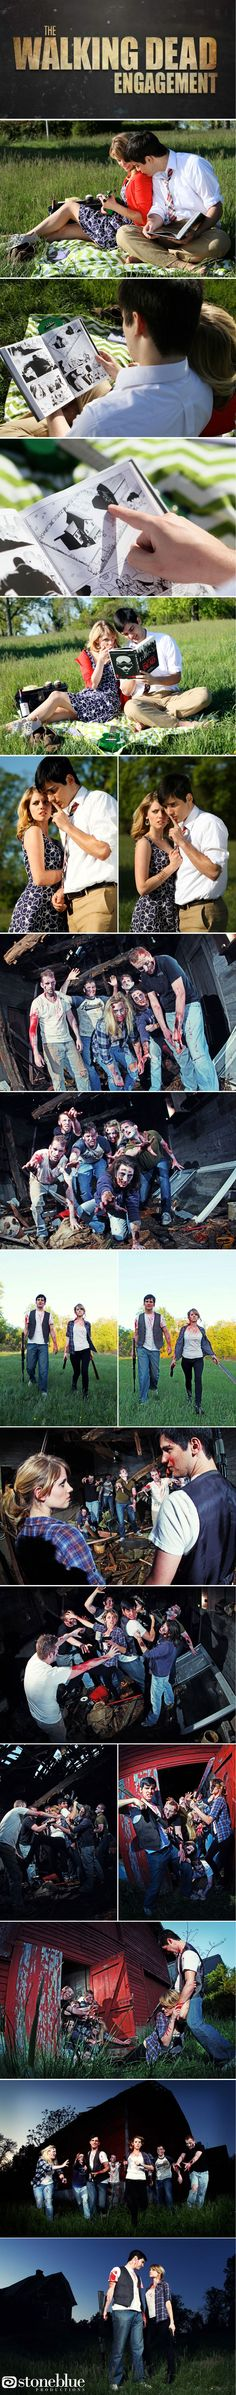 """""""The Walking Dead"""" fans had a zombie themed engagement shoot with their friends. Haha, so funny 